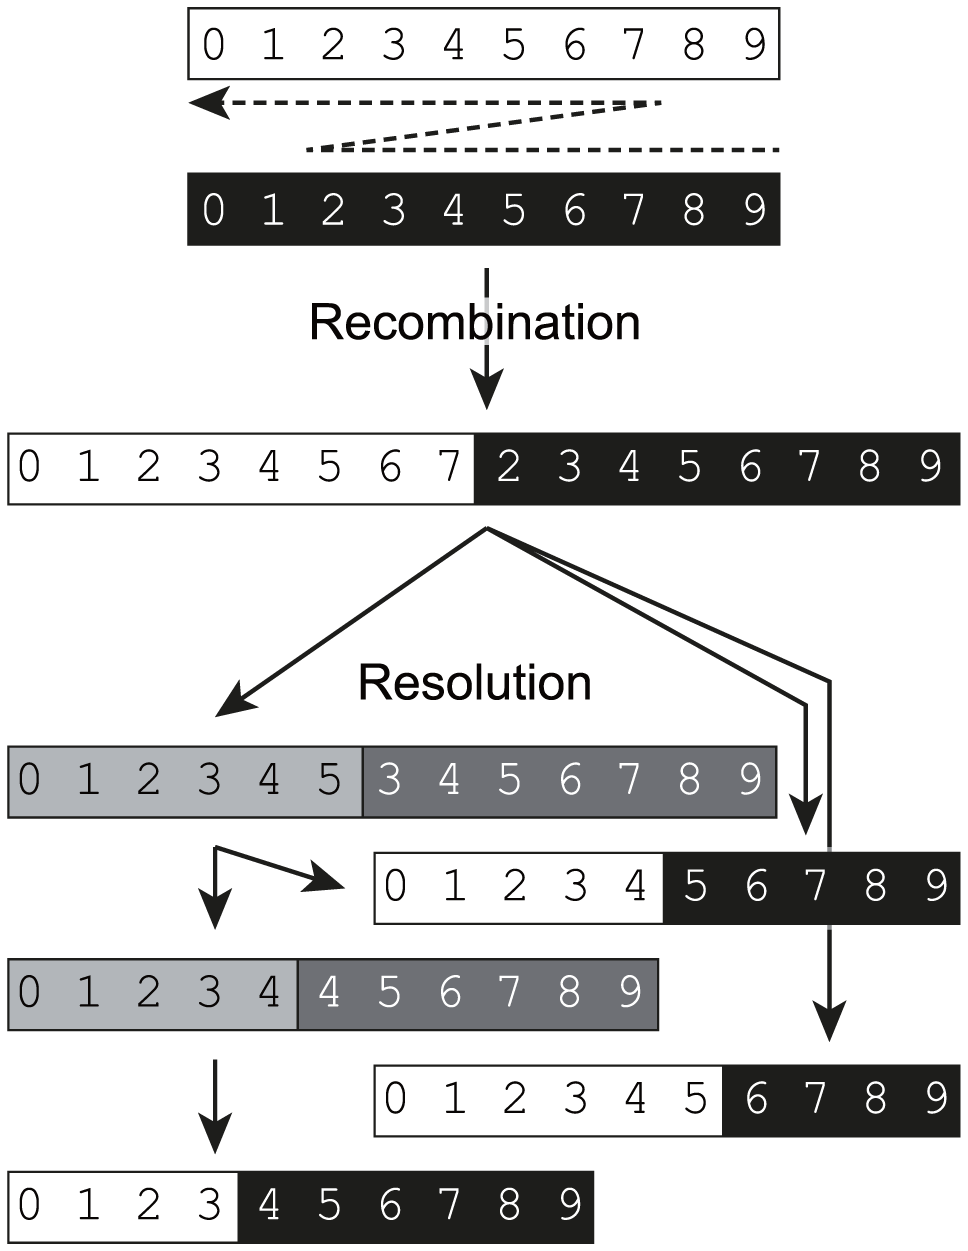 A biphasic model for replicative recombination in enteroviruses.